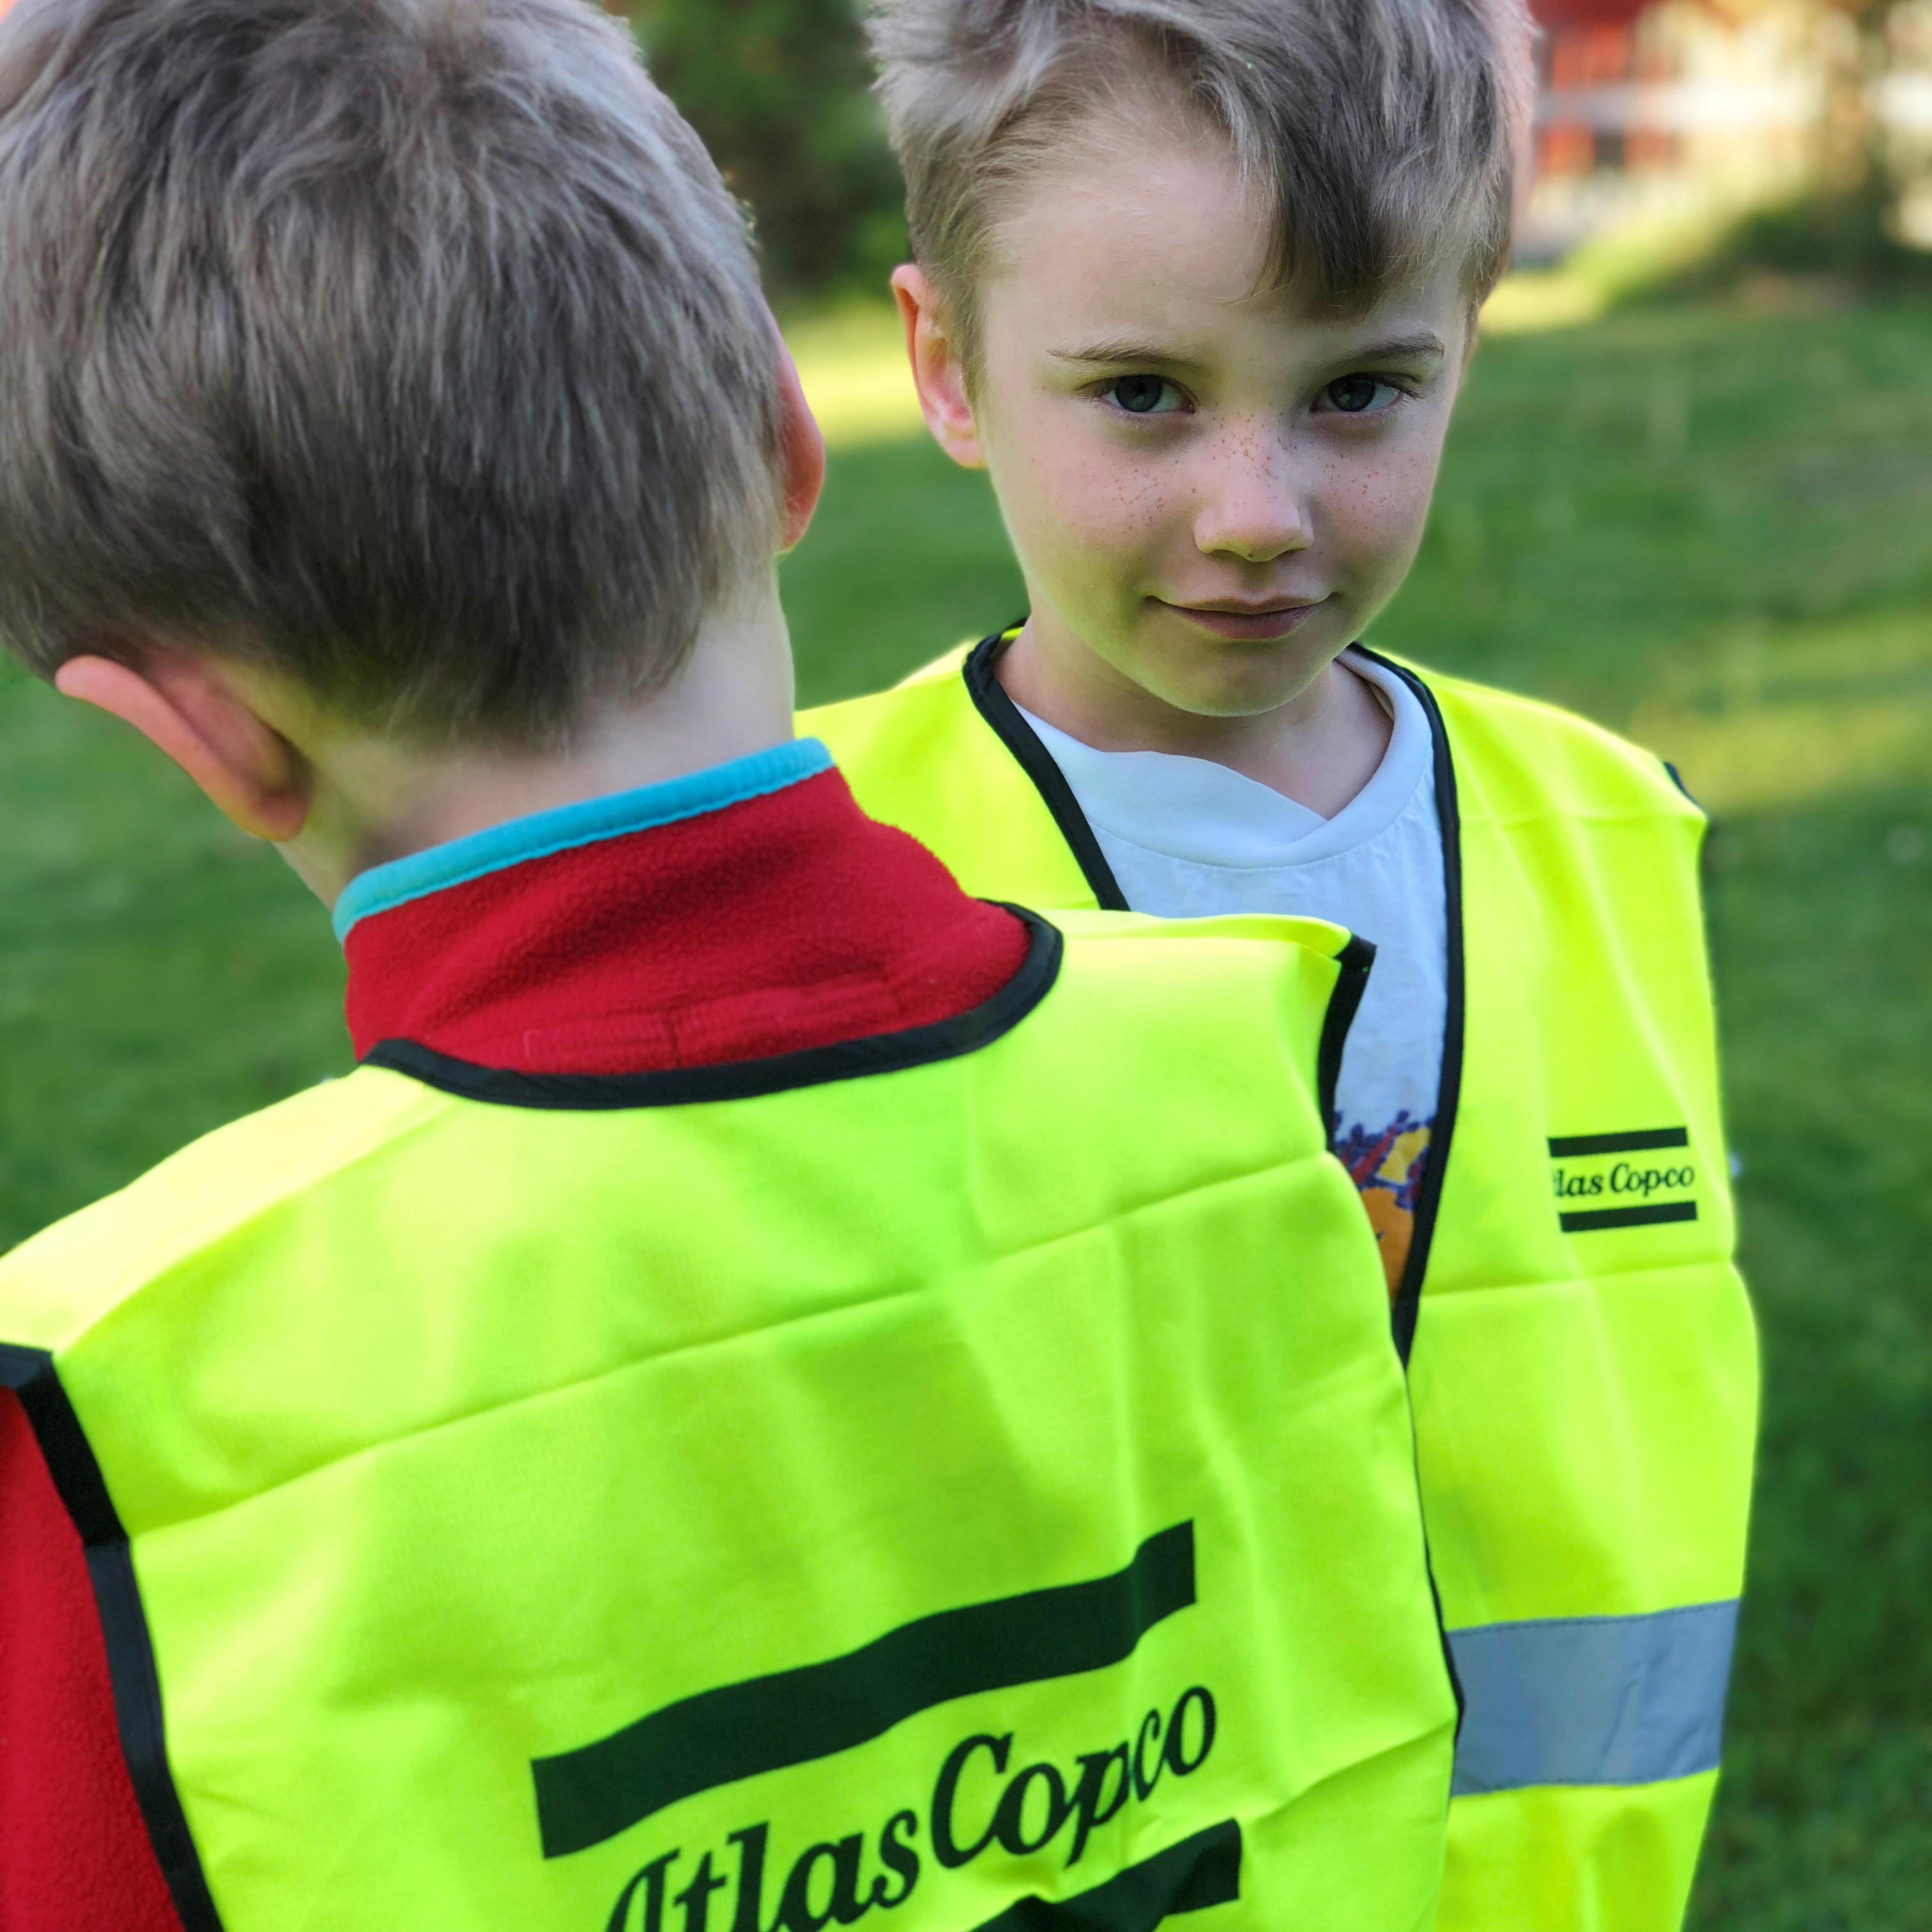 This high-quality safety vest for children is made in fluorescent yellow fabric.